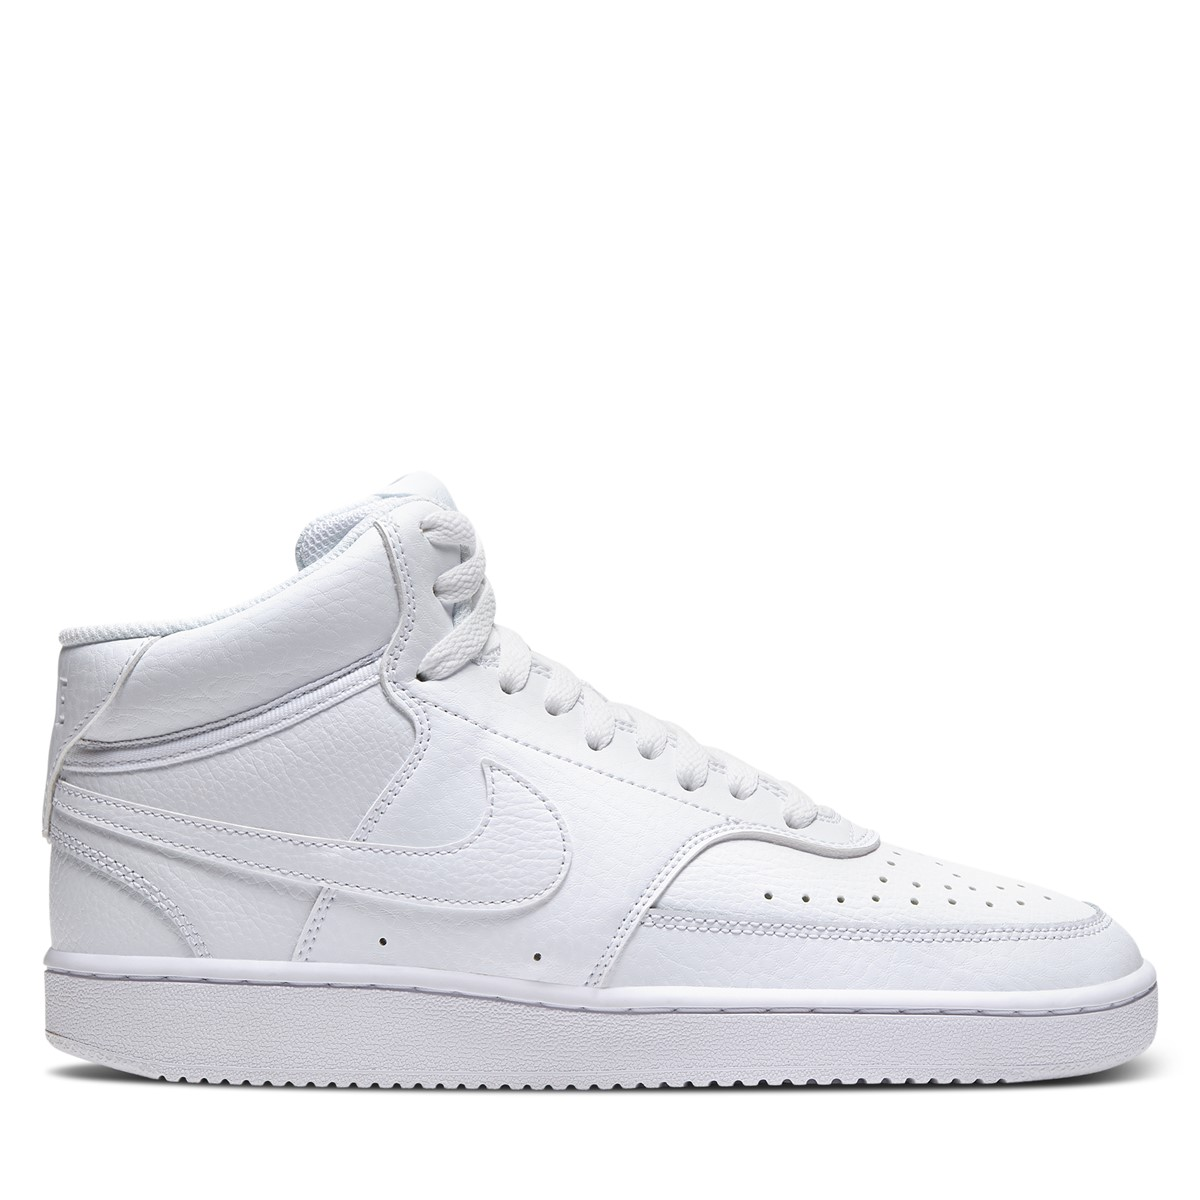 Women's Court Vision Mid Sneakers in White